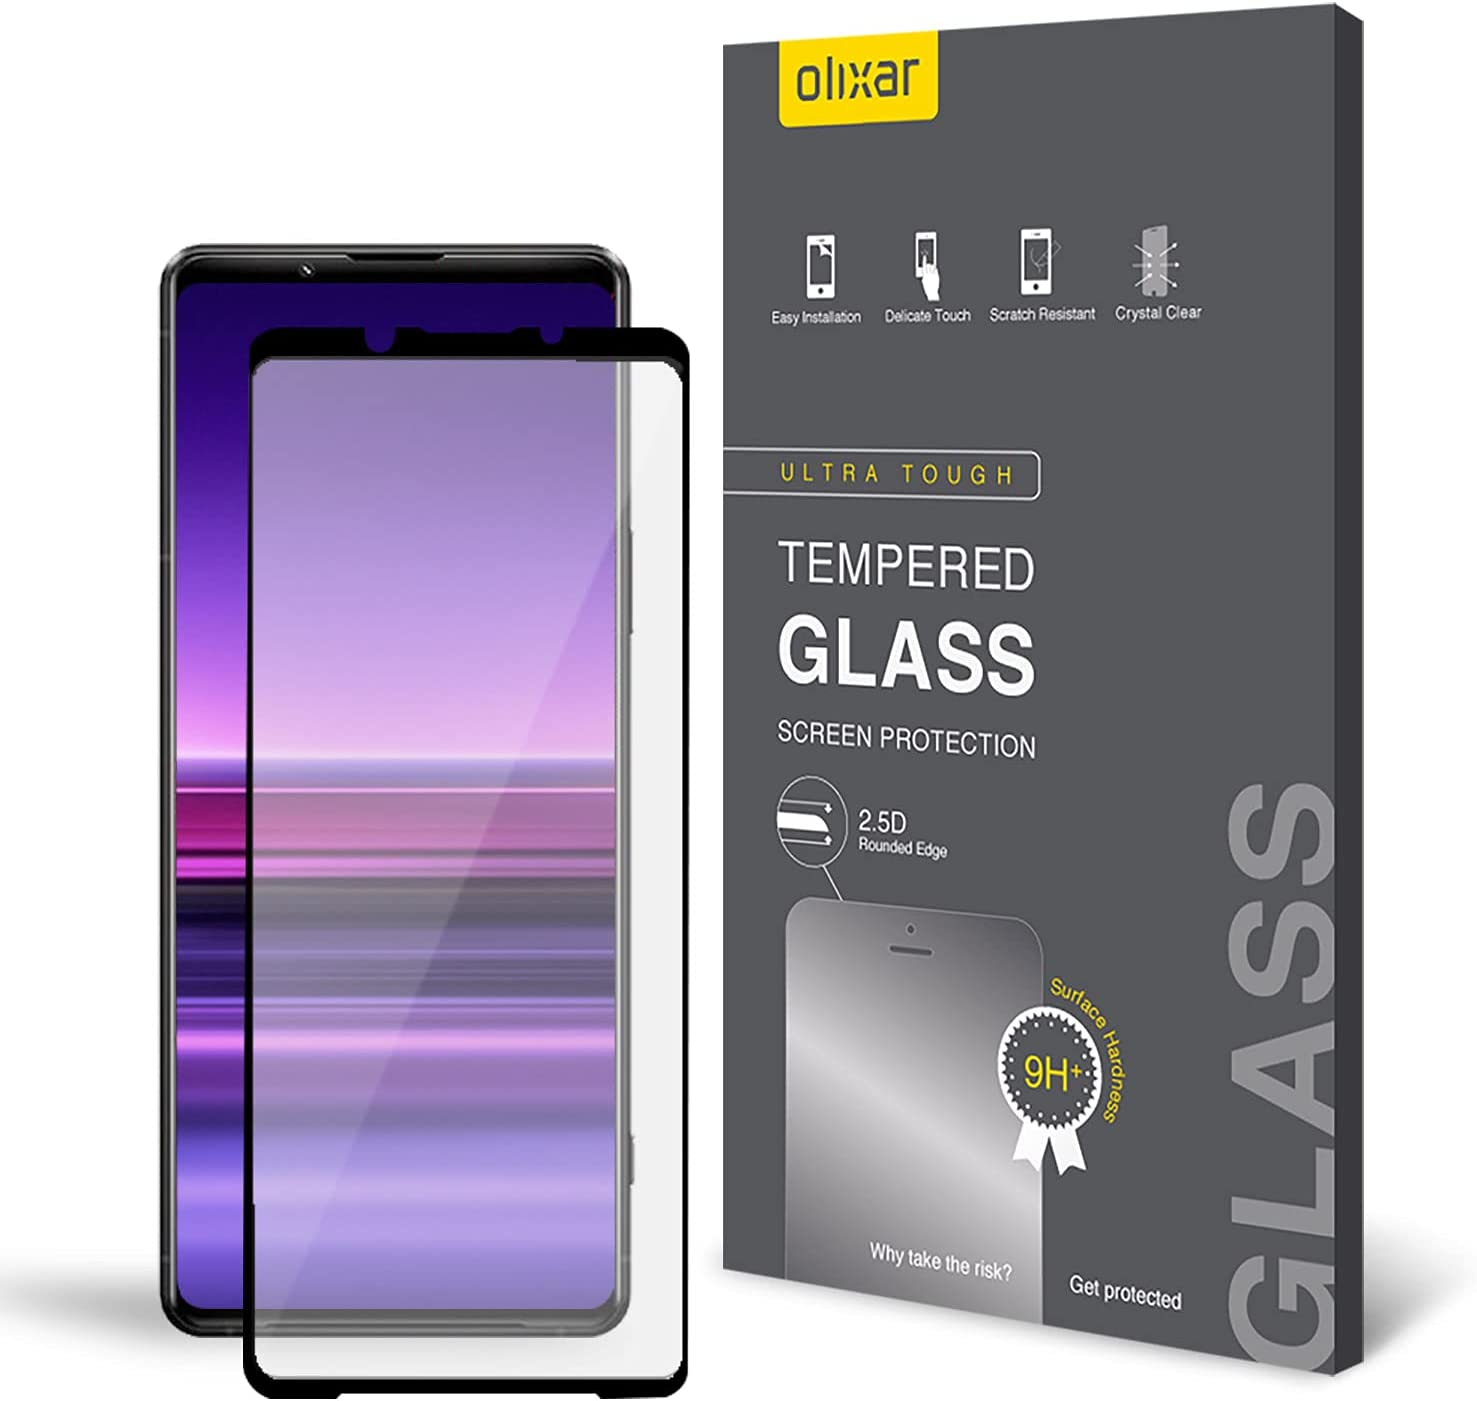 Olixar Screen Protector for Sony Xperia 1 III, Tempered Glass - Reliable Protection, Supports Device Features - Full Video Installation Guide